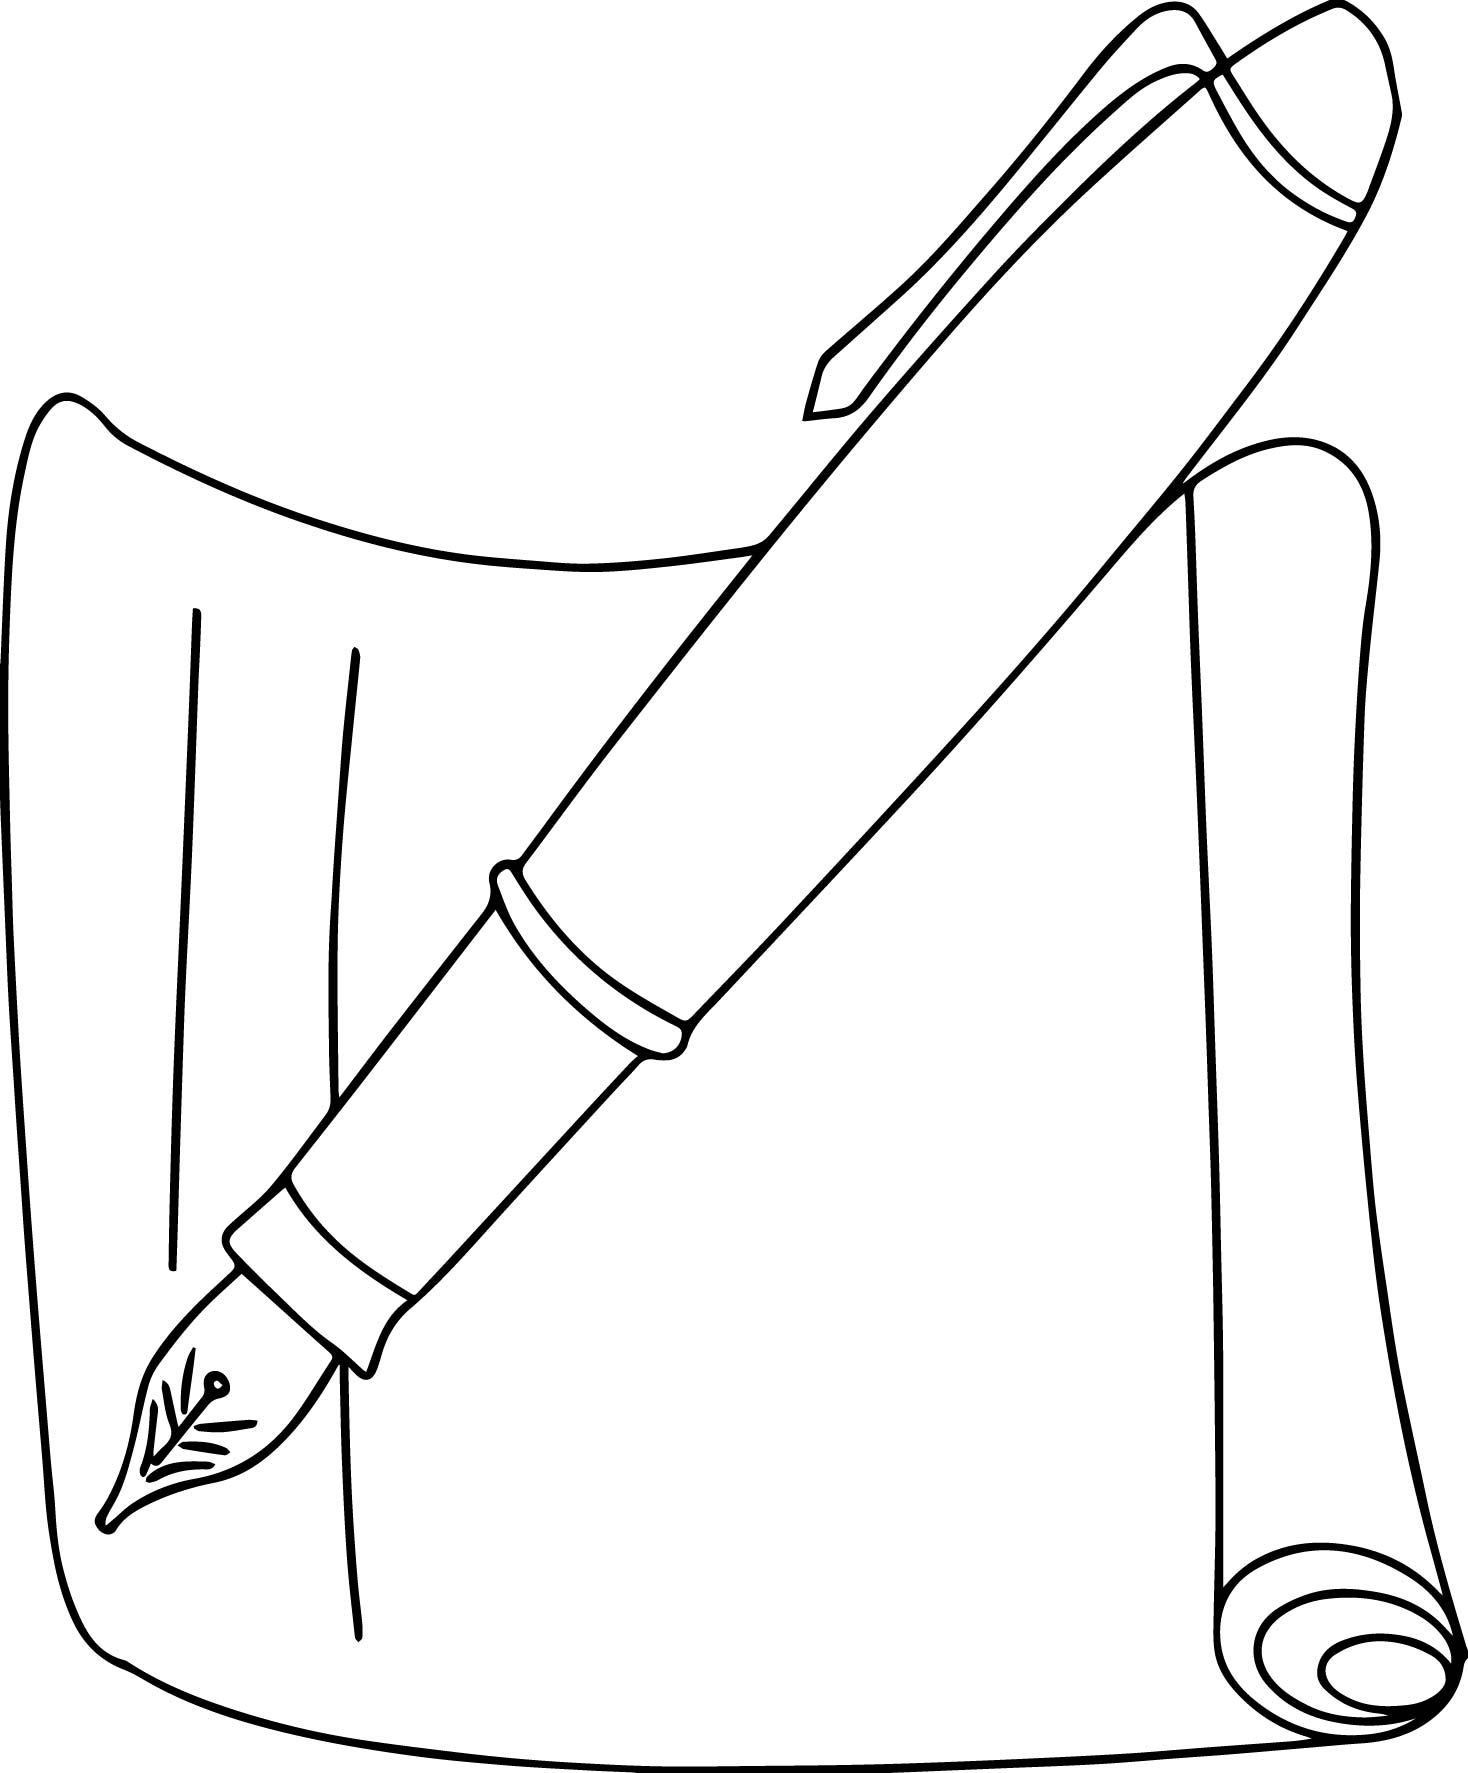 1468x1773 Suddenly Paint Brush Coloring Page Roi